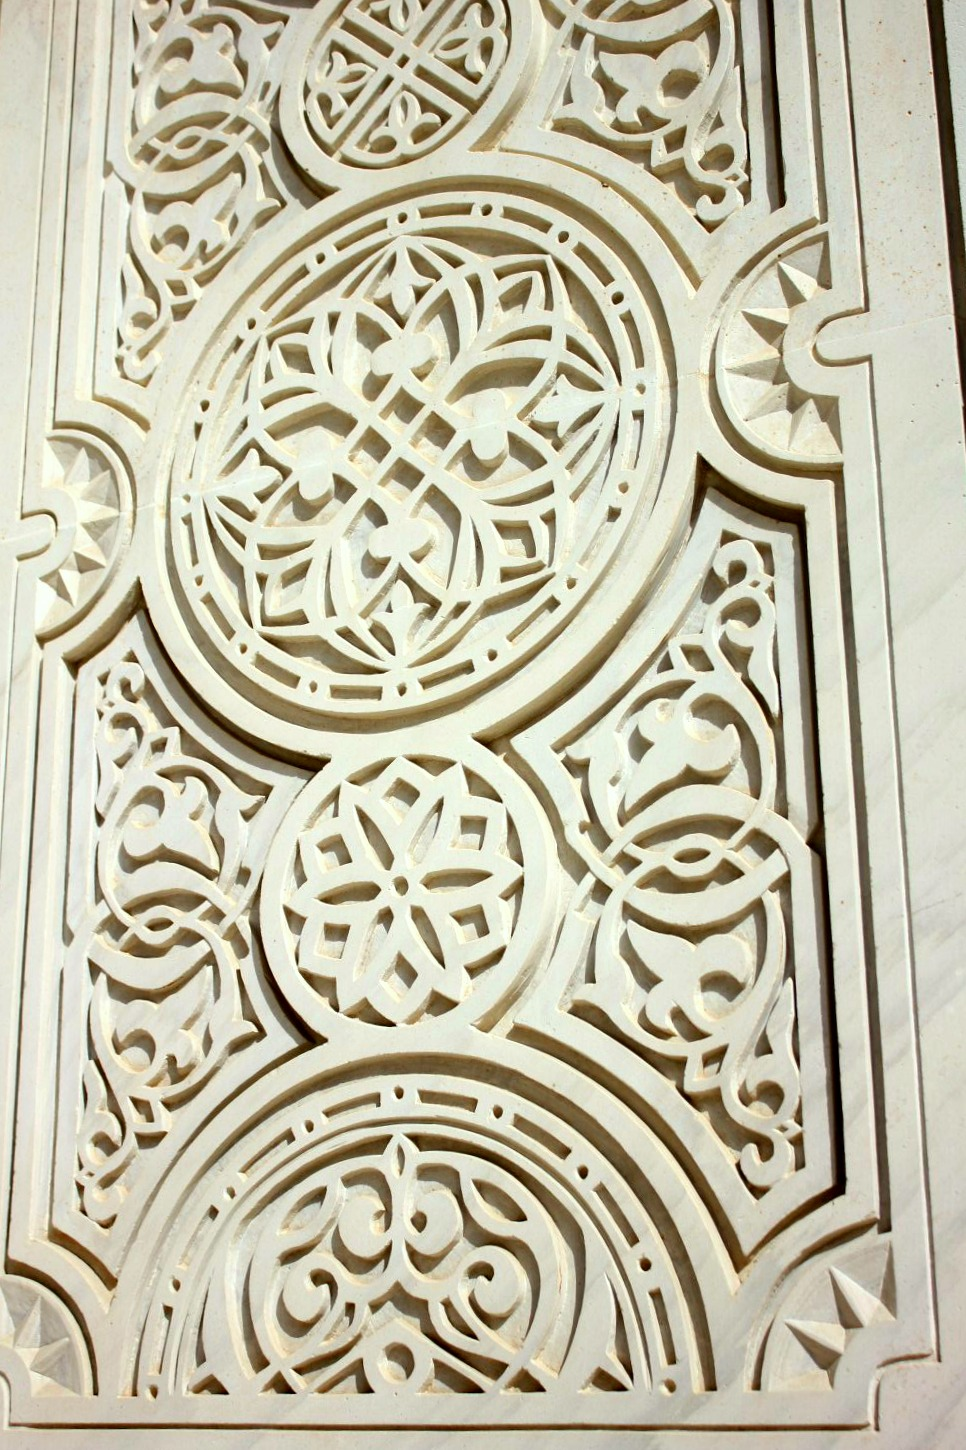 A view of some of the intricate geometric detailing on the white stone walls of the Sultan Qaboos Grand Mosque in Muscat Oman - the beautiful architecture is one of my nine reasons to visit Oman with kids